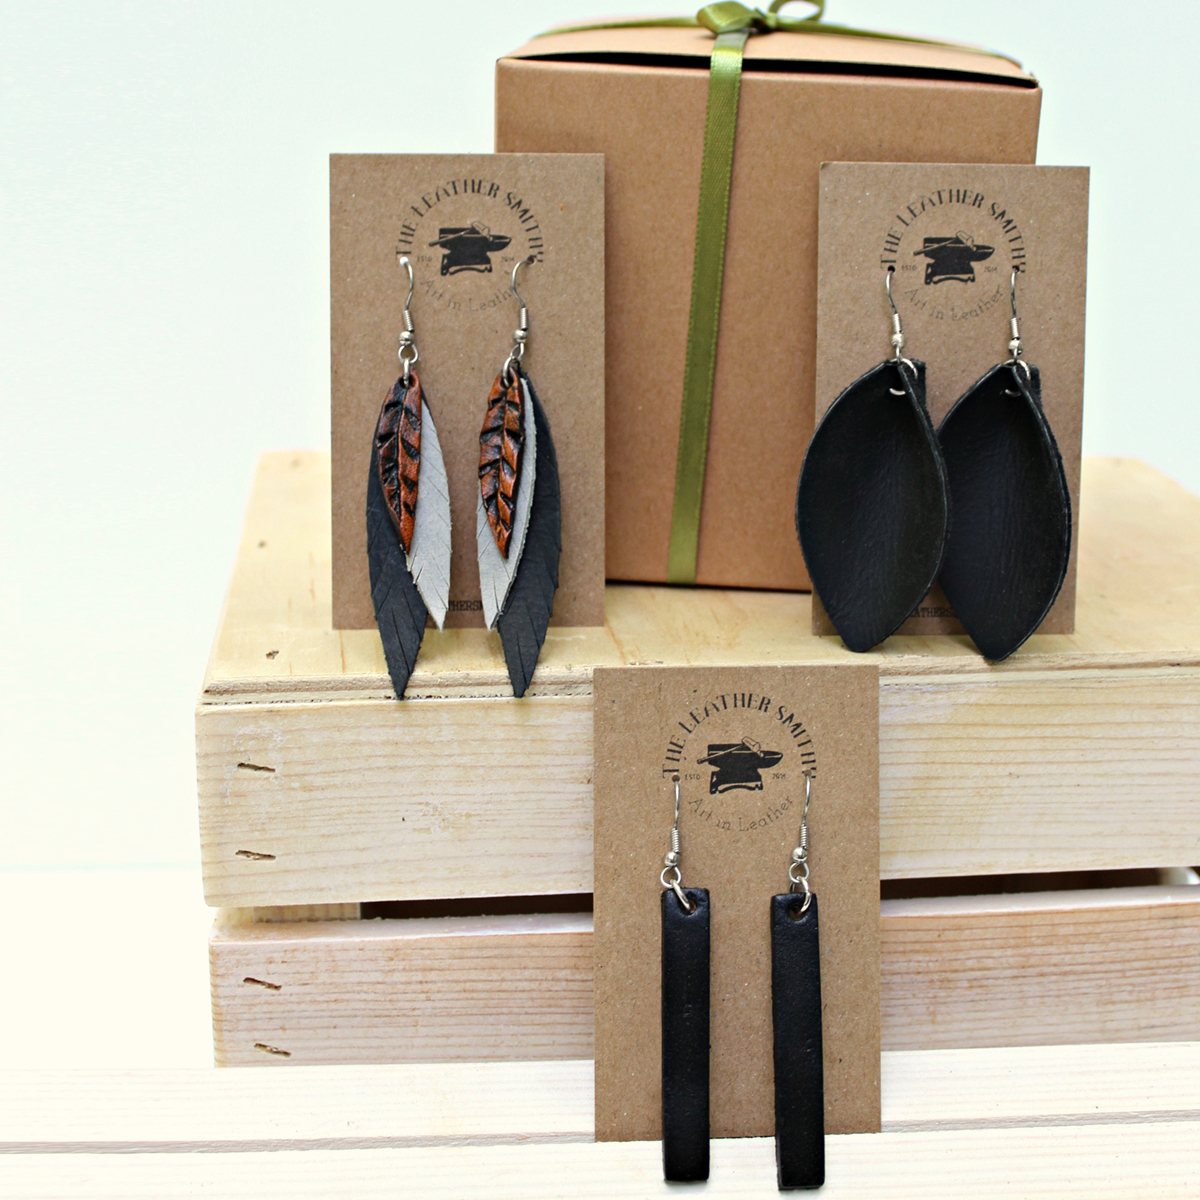 leather-earrings-3-pack-gift-set-with-gift-box-the-leather-smithy_2